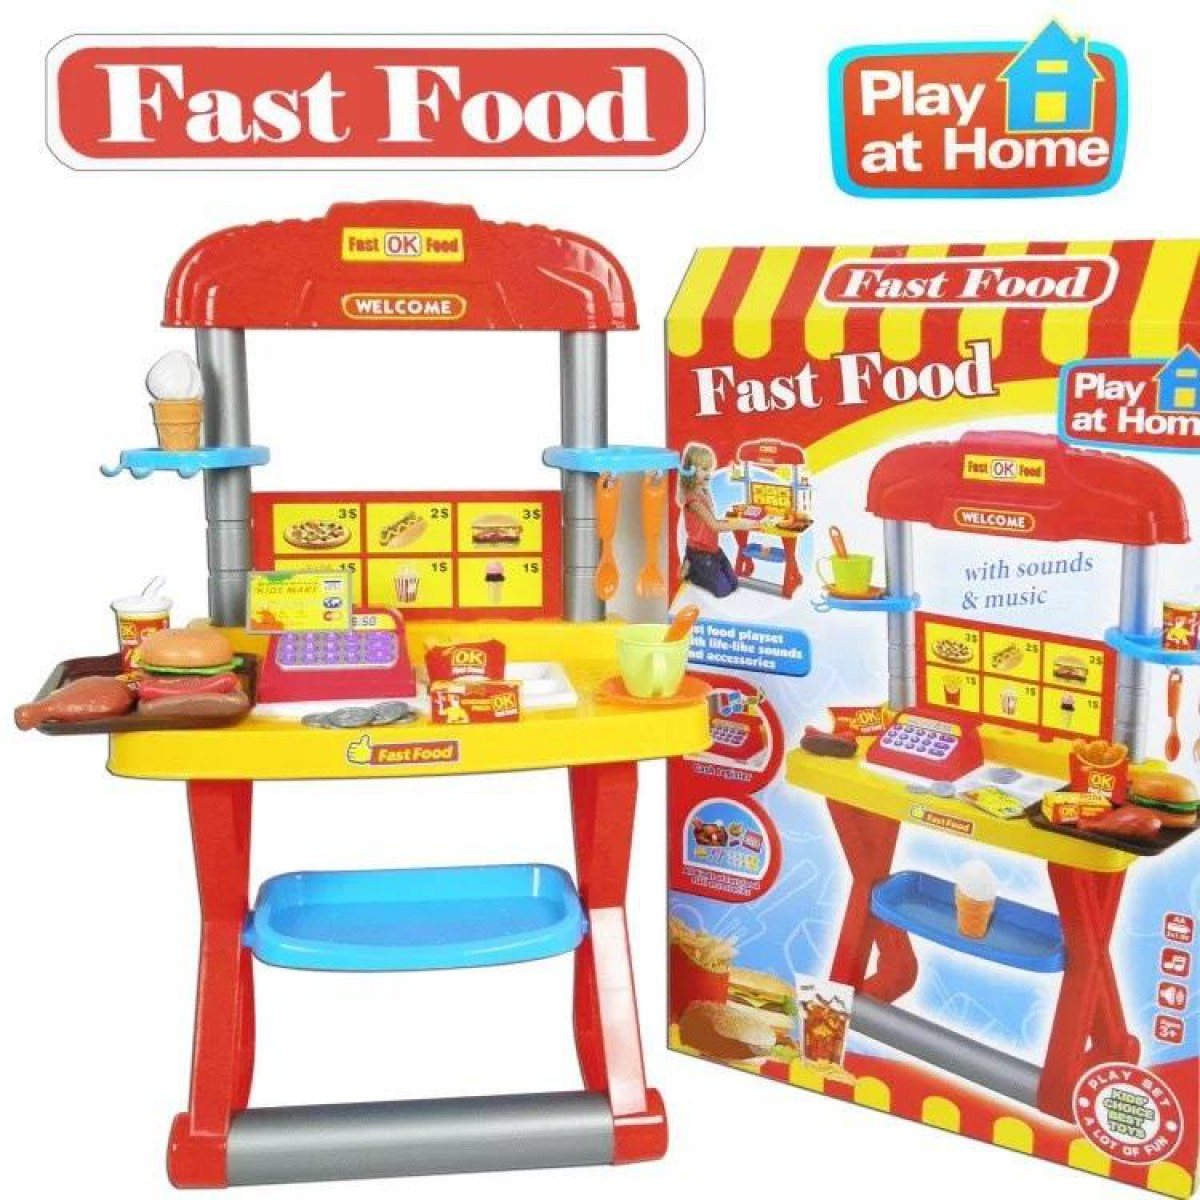 Kitchen Set Online Shopping: FAST FOOD RESTAURANT KITCHEN TOY PLAY SET More Than 15